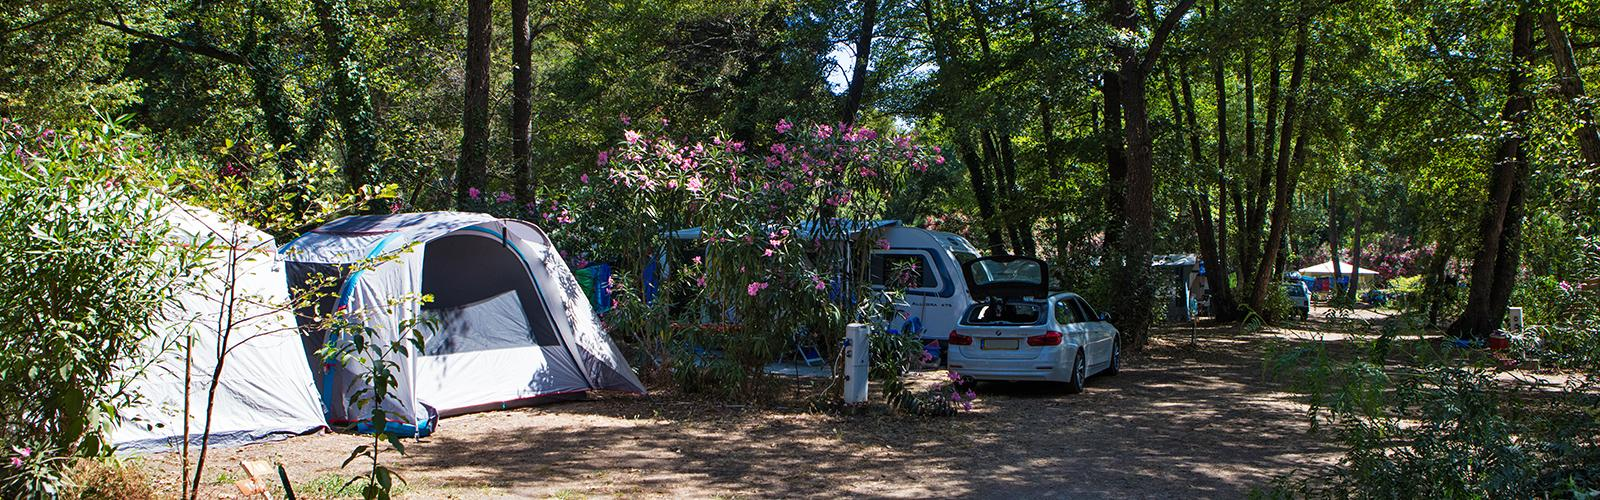 Emplacement camping corse